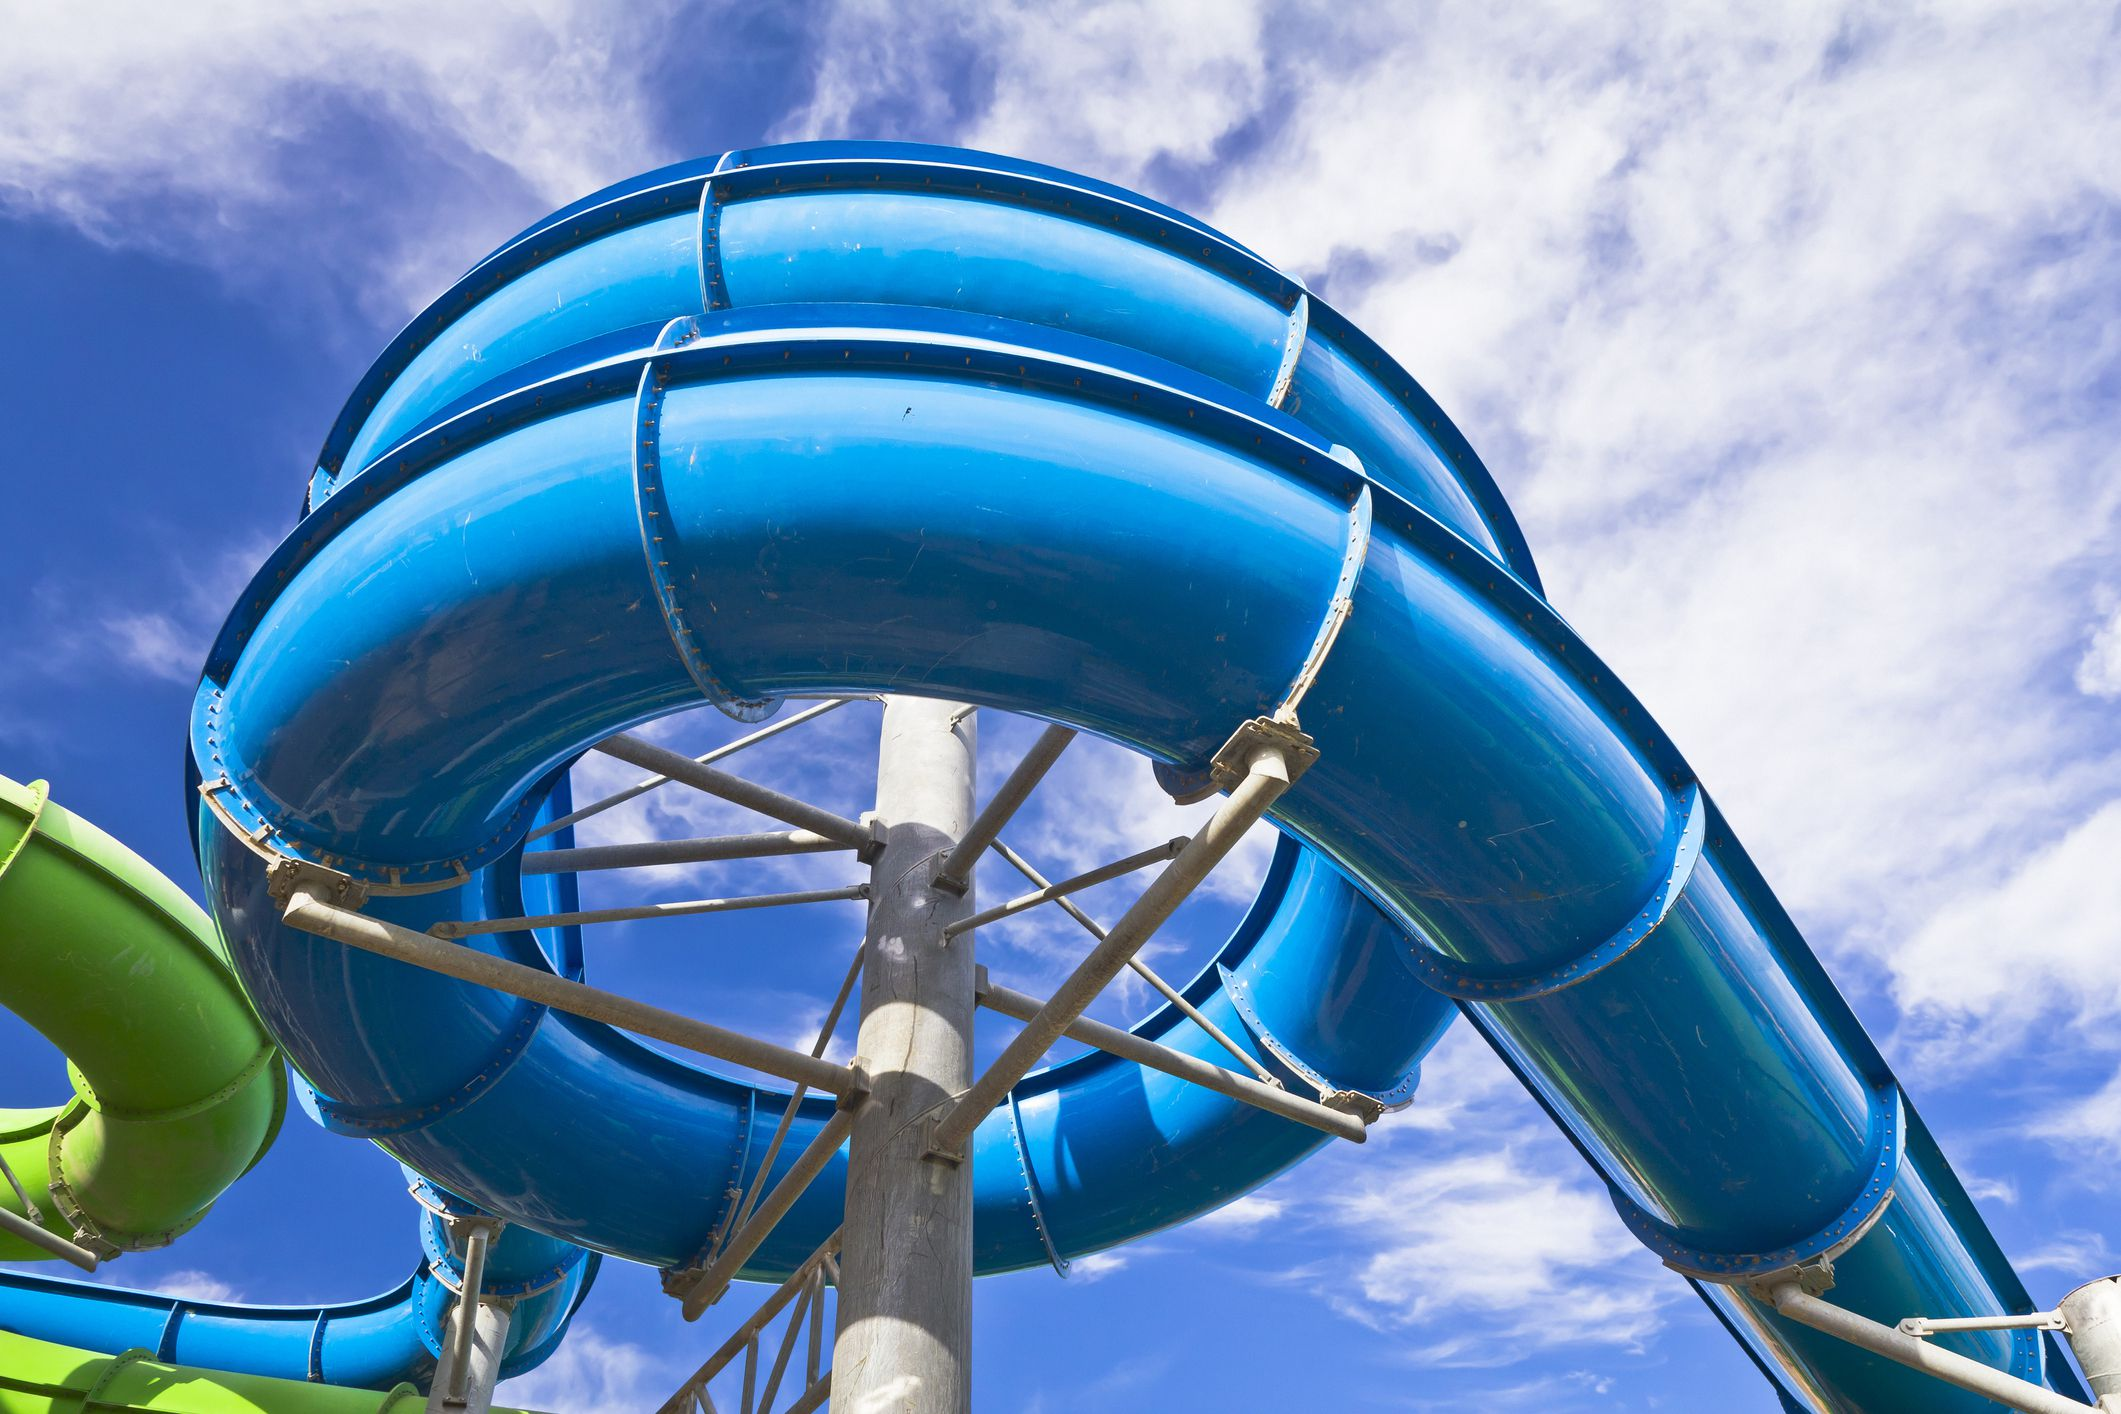 Cool Off At A Ft Lauderdale Water Park